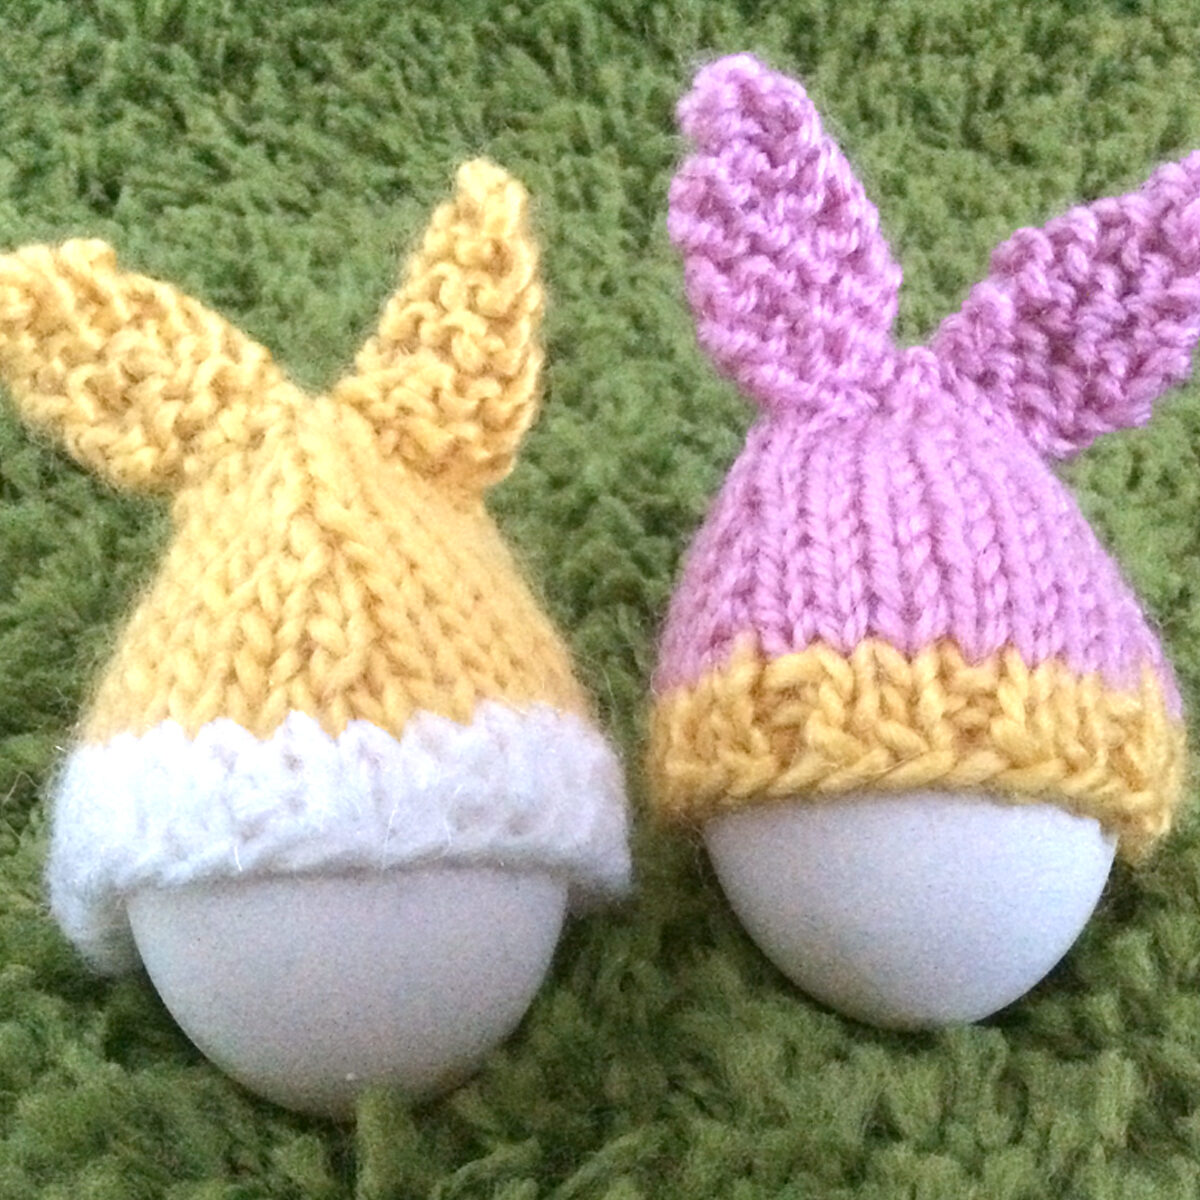 Two eggs with knitted easter bunny rabbit ear toppers as cozies on a green backdrop.